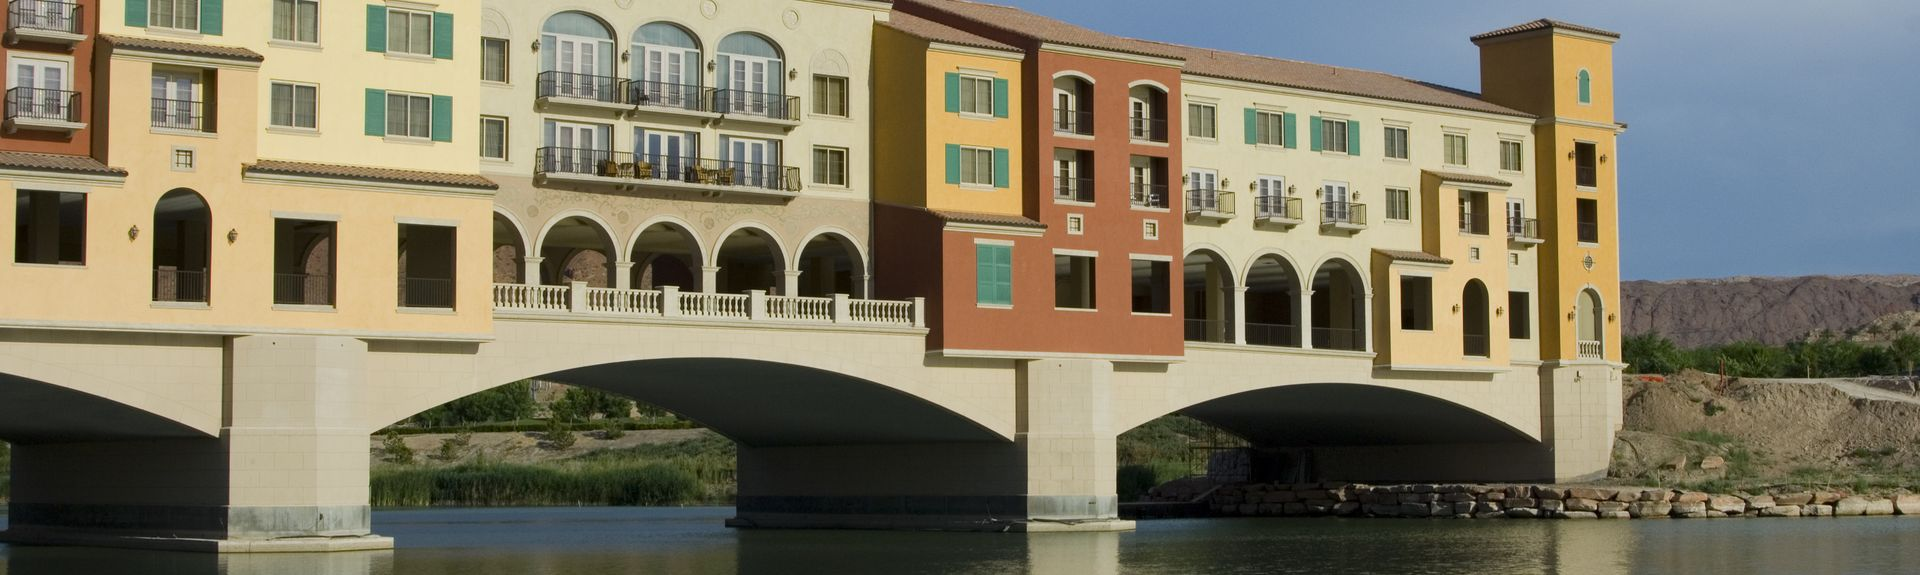 Lake Las Vegas, Henderson, NV, USA